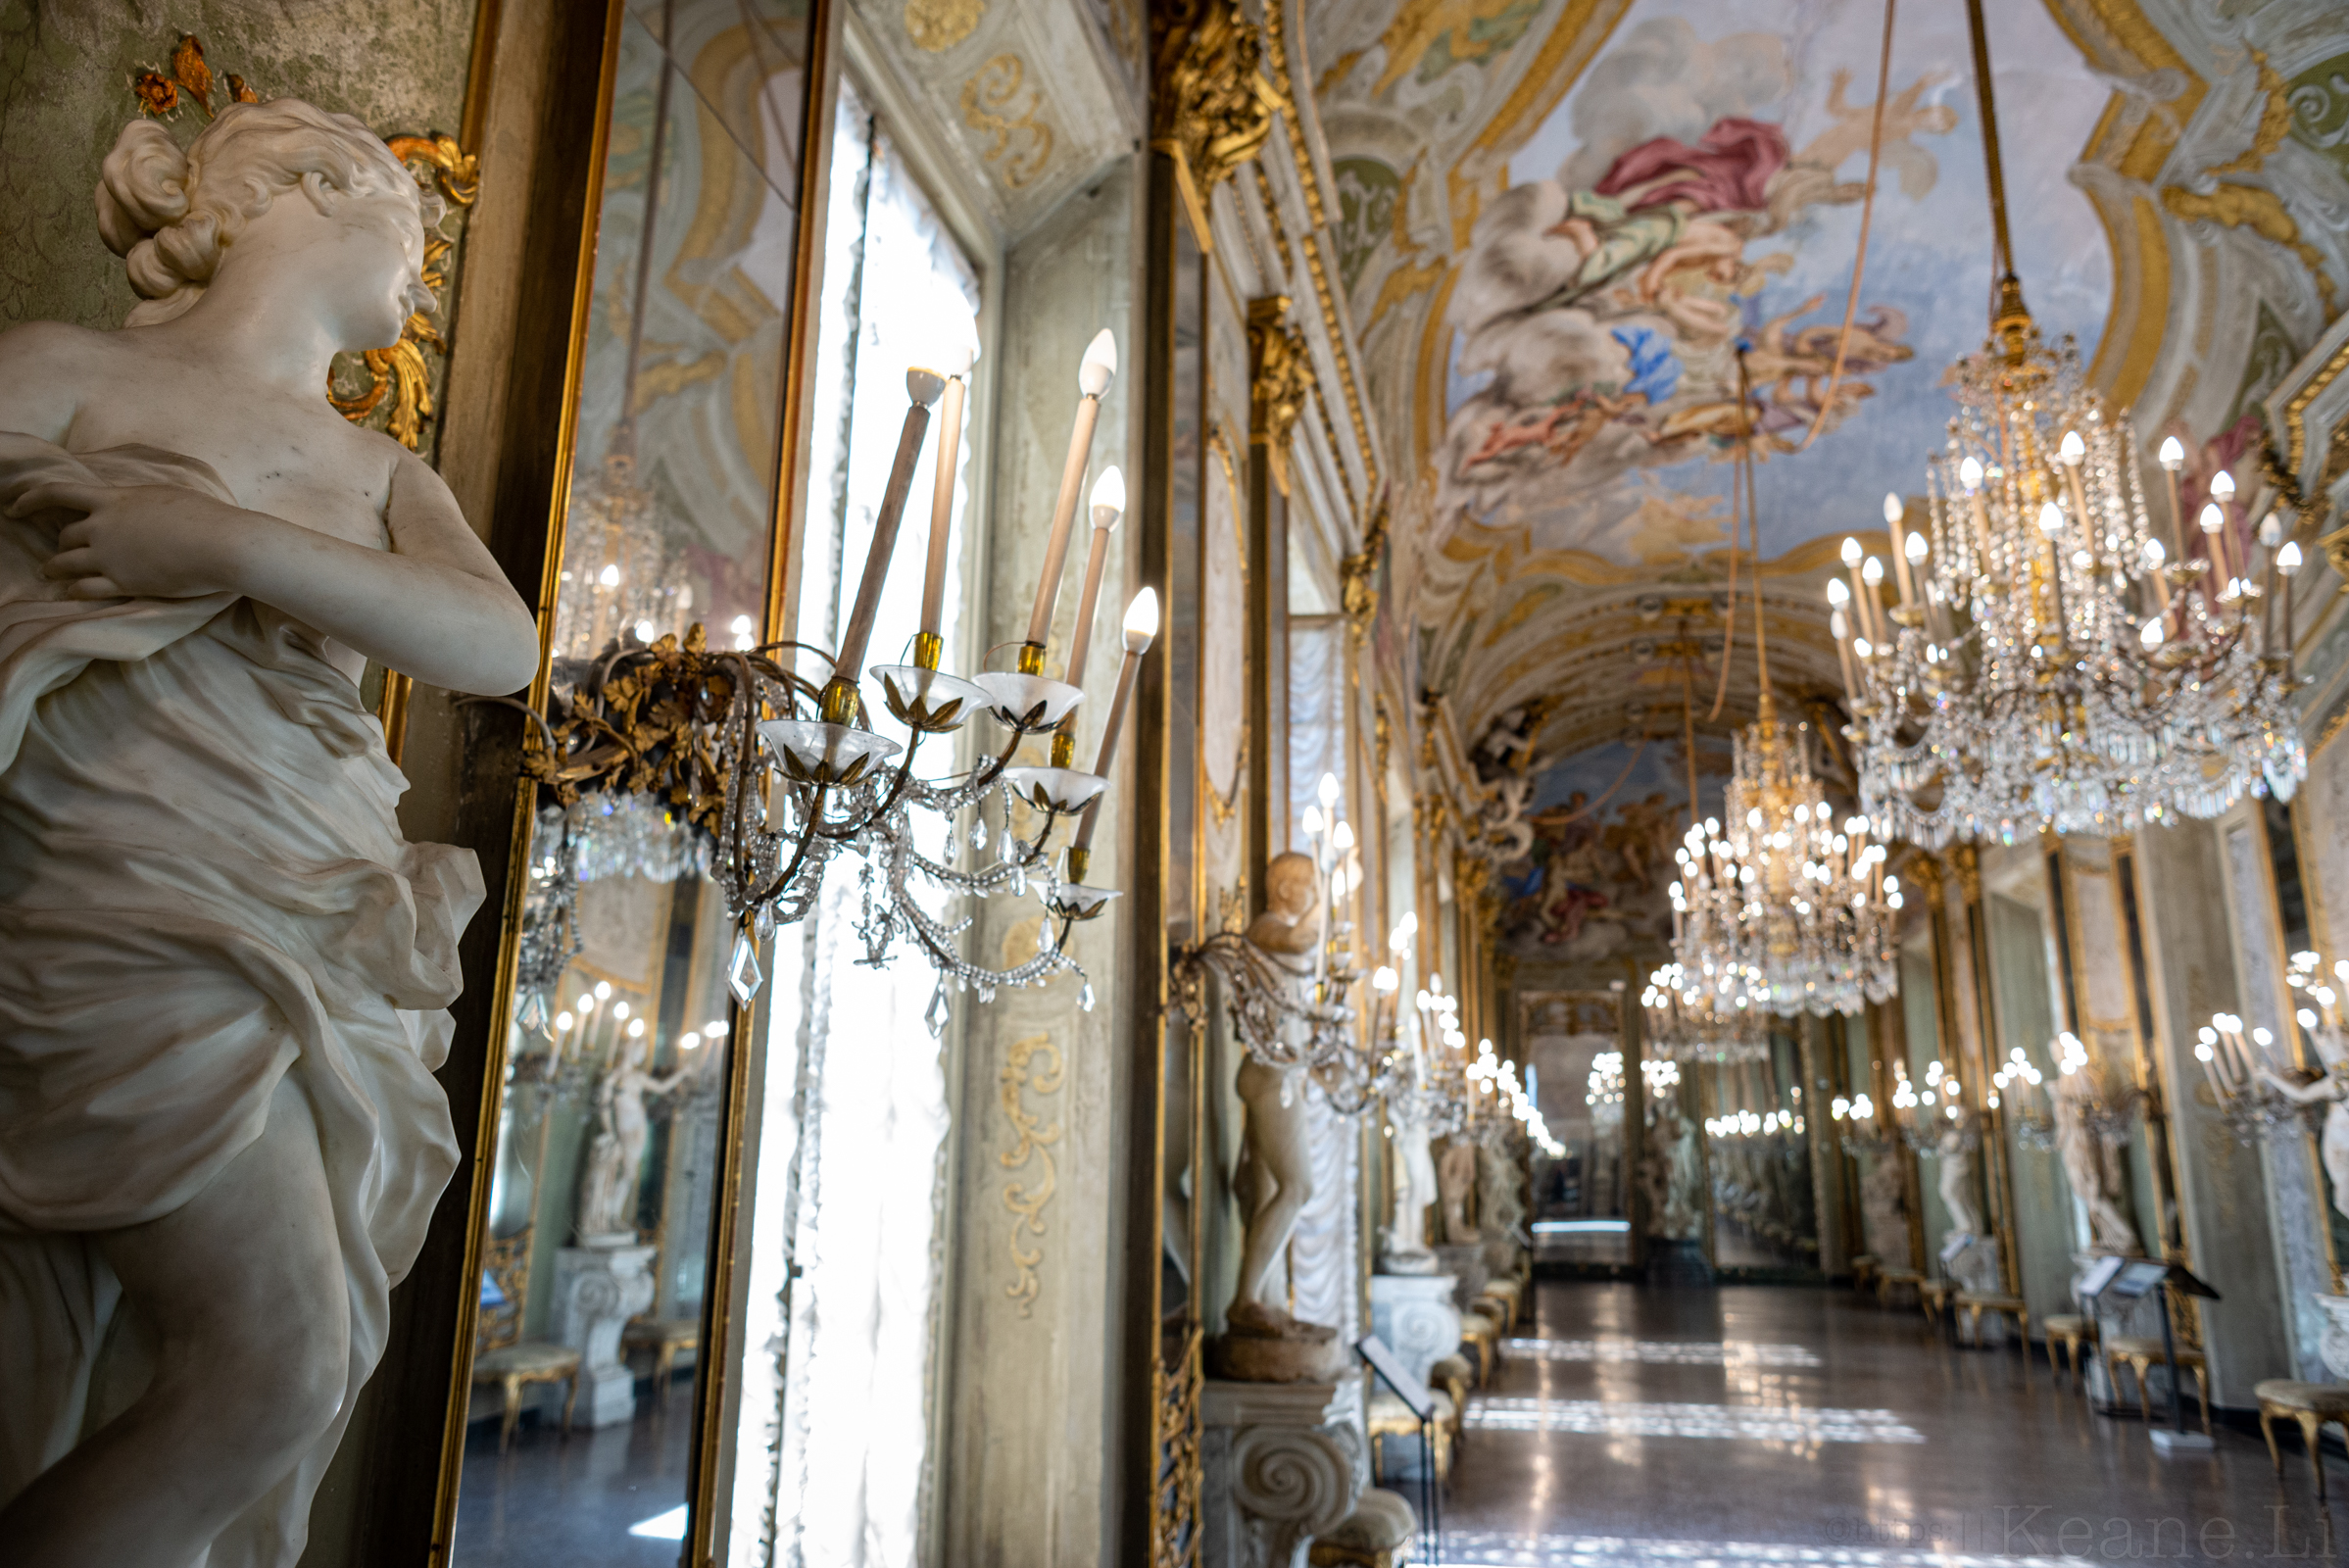 Mirror Gallery in the Royal Palace of Genoa